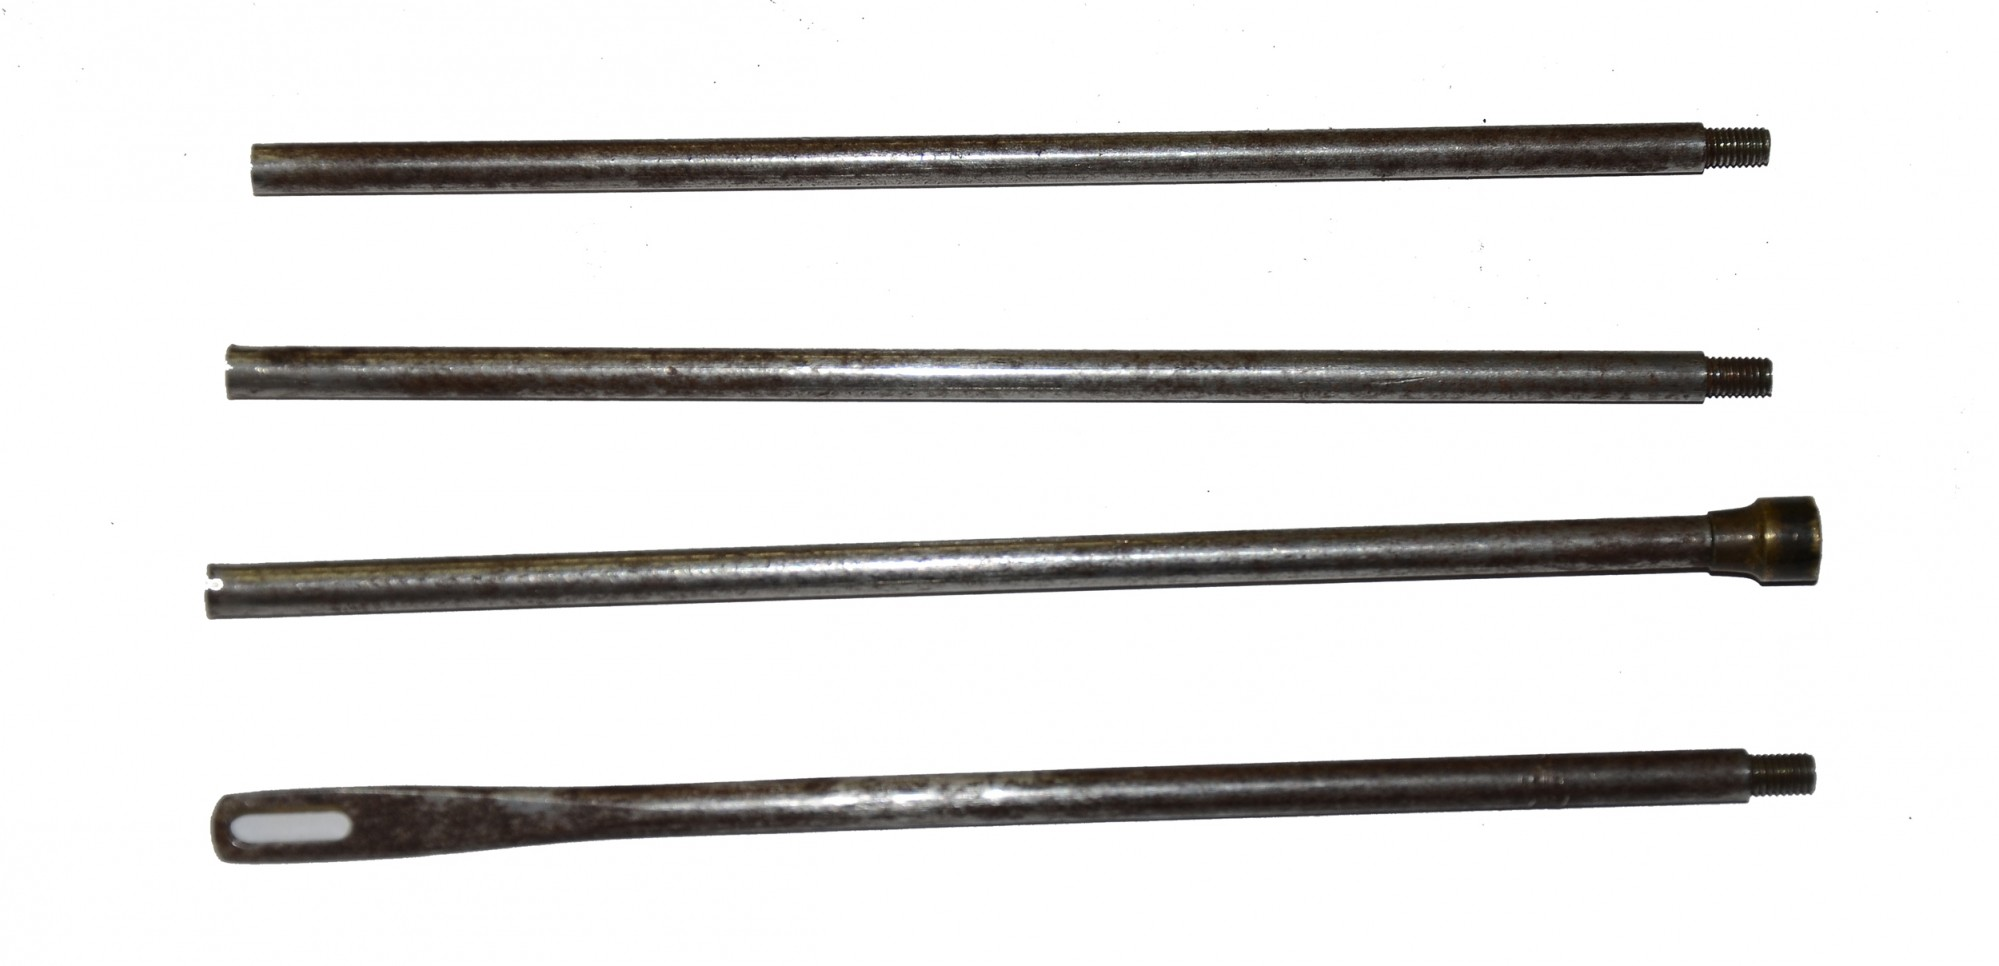 RARE HENRY RIFLE CLEANING ROD